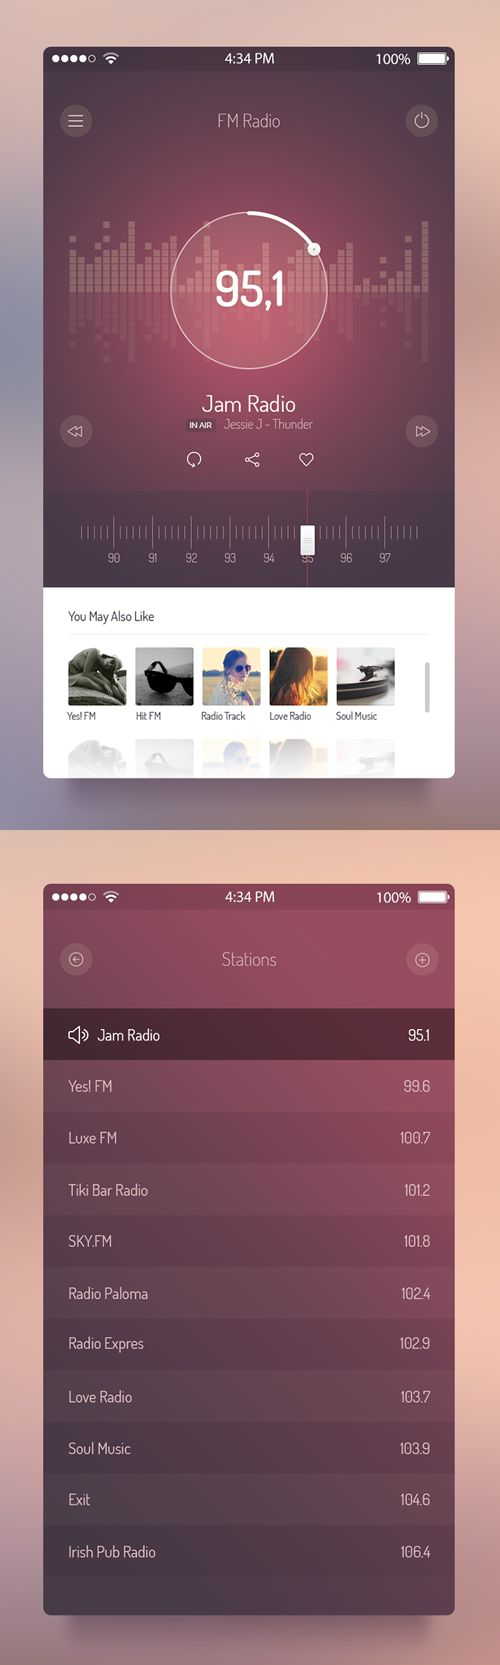 Amazing Mobile App UI Designs with Ultimate UX | Inspiration | Graphic Design Junction